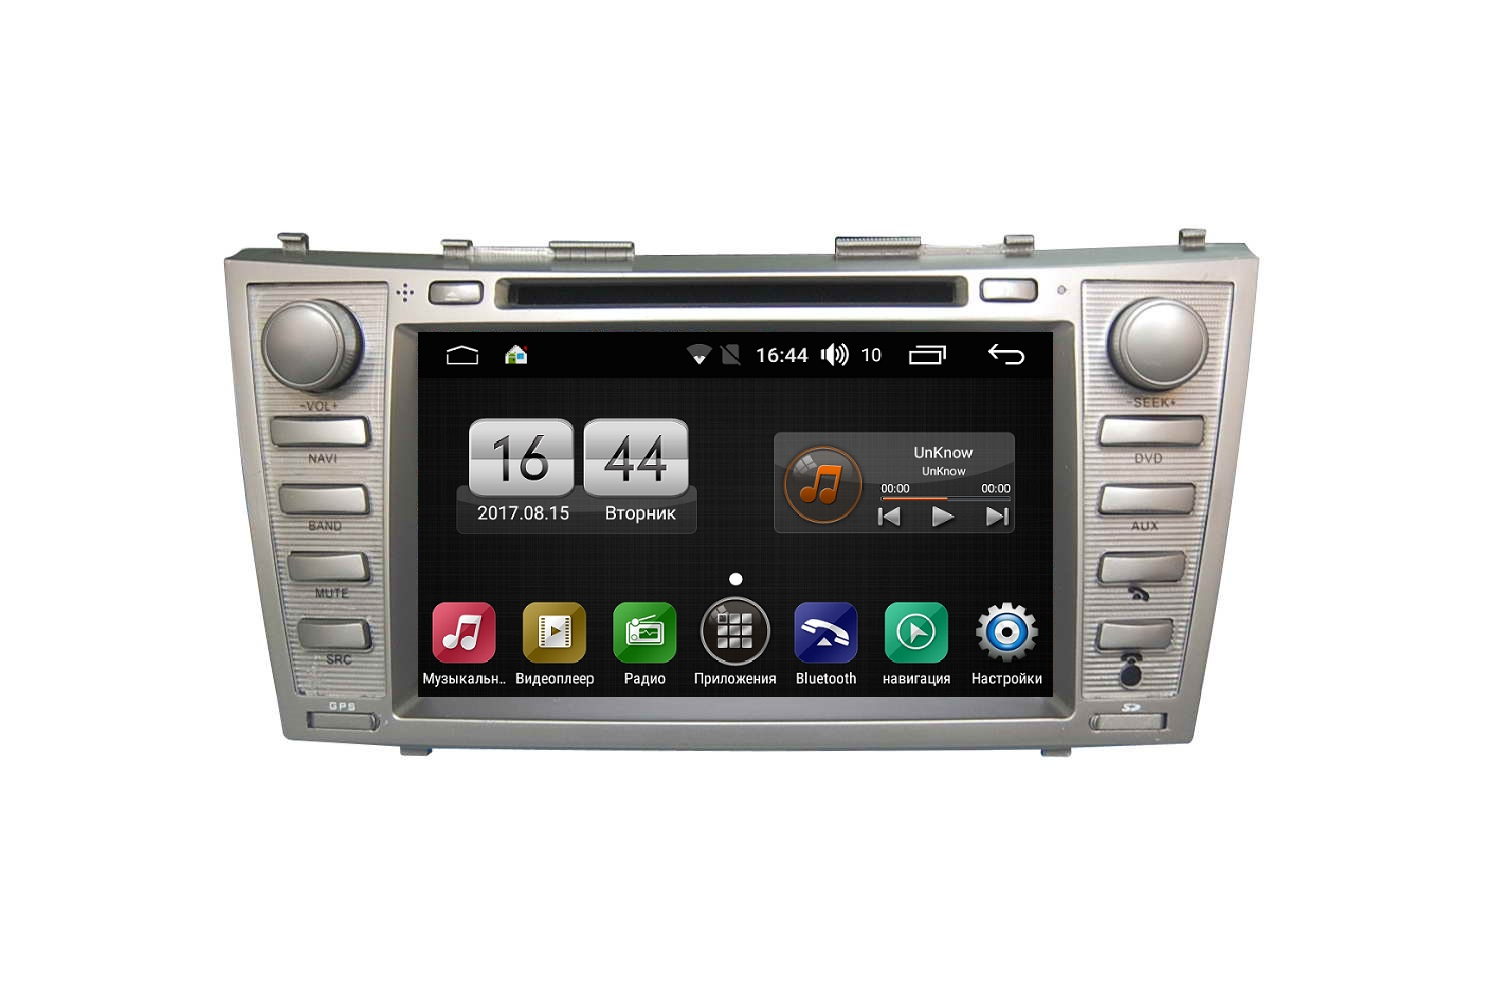 Штатная магнитола FarCar s170 для Toyota Camry на Android (L064) labo car video player 7 hd 2 din car radio stereo gps navigation fm rds bluetooth remote control rear view camera